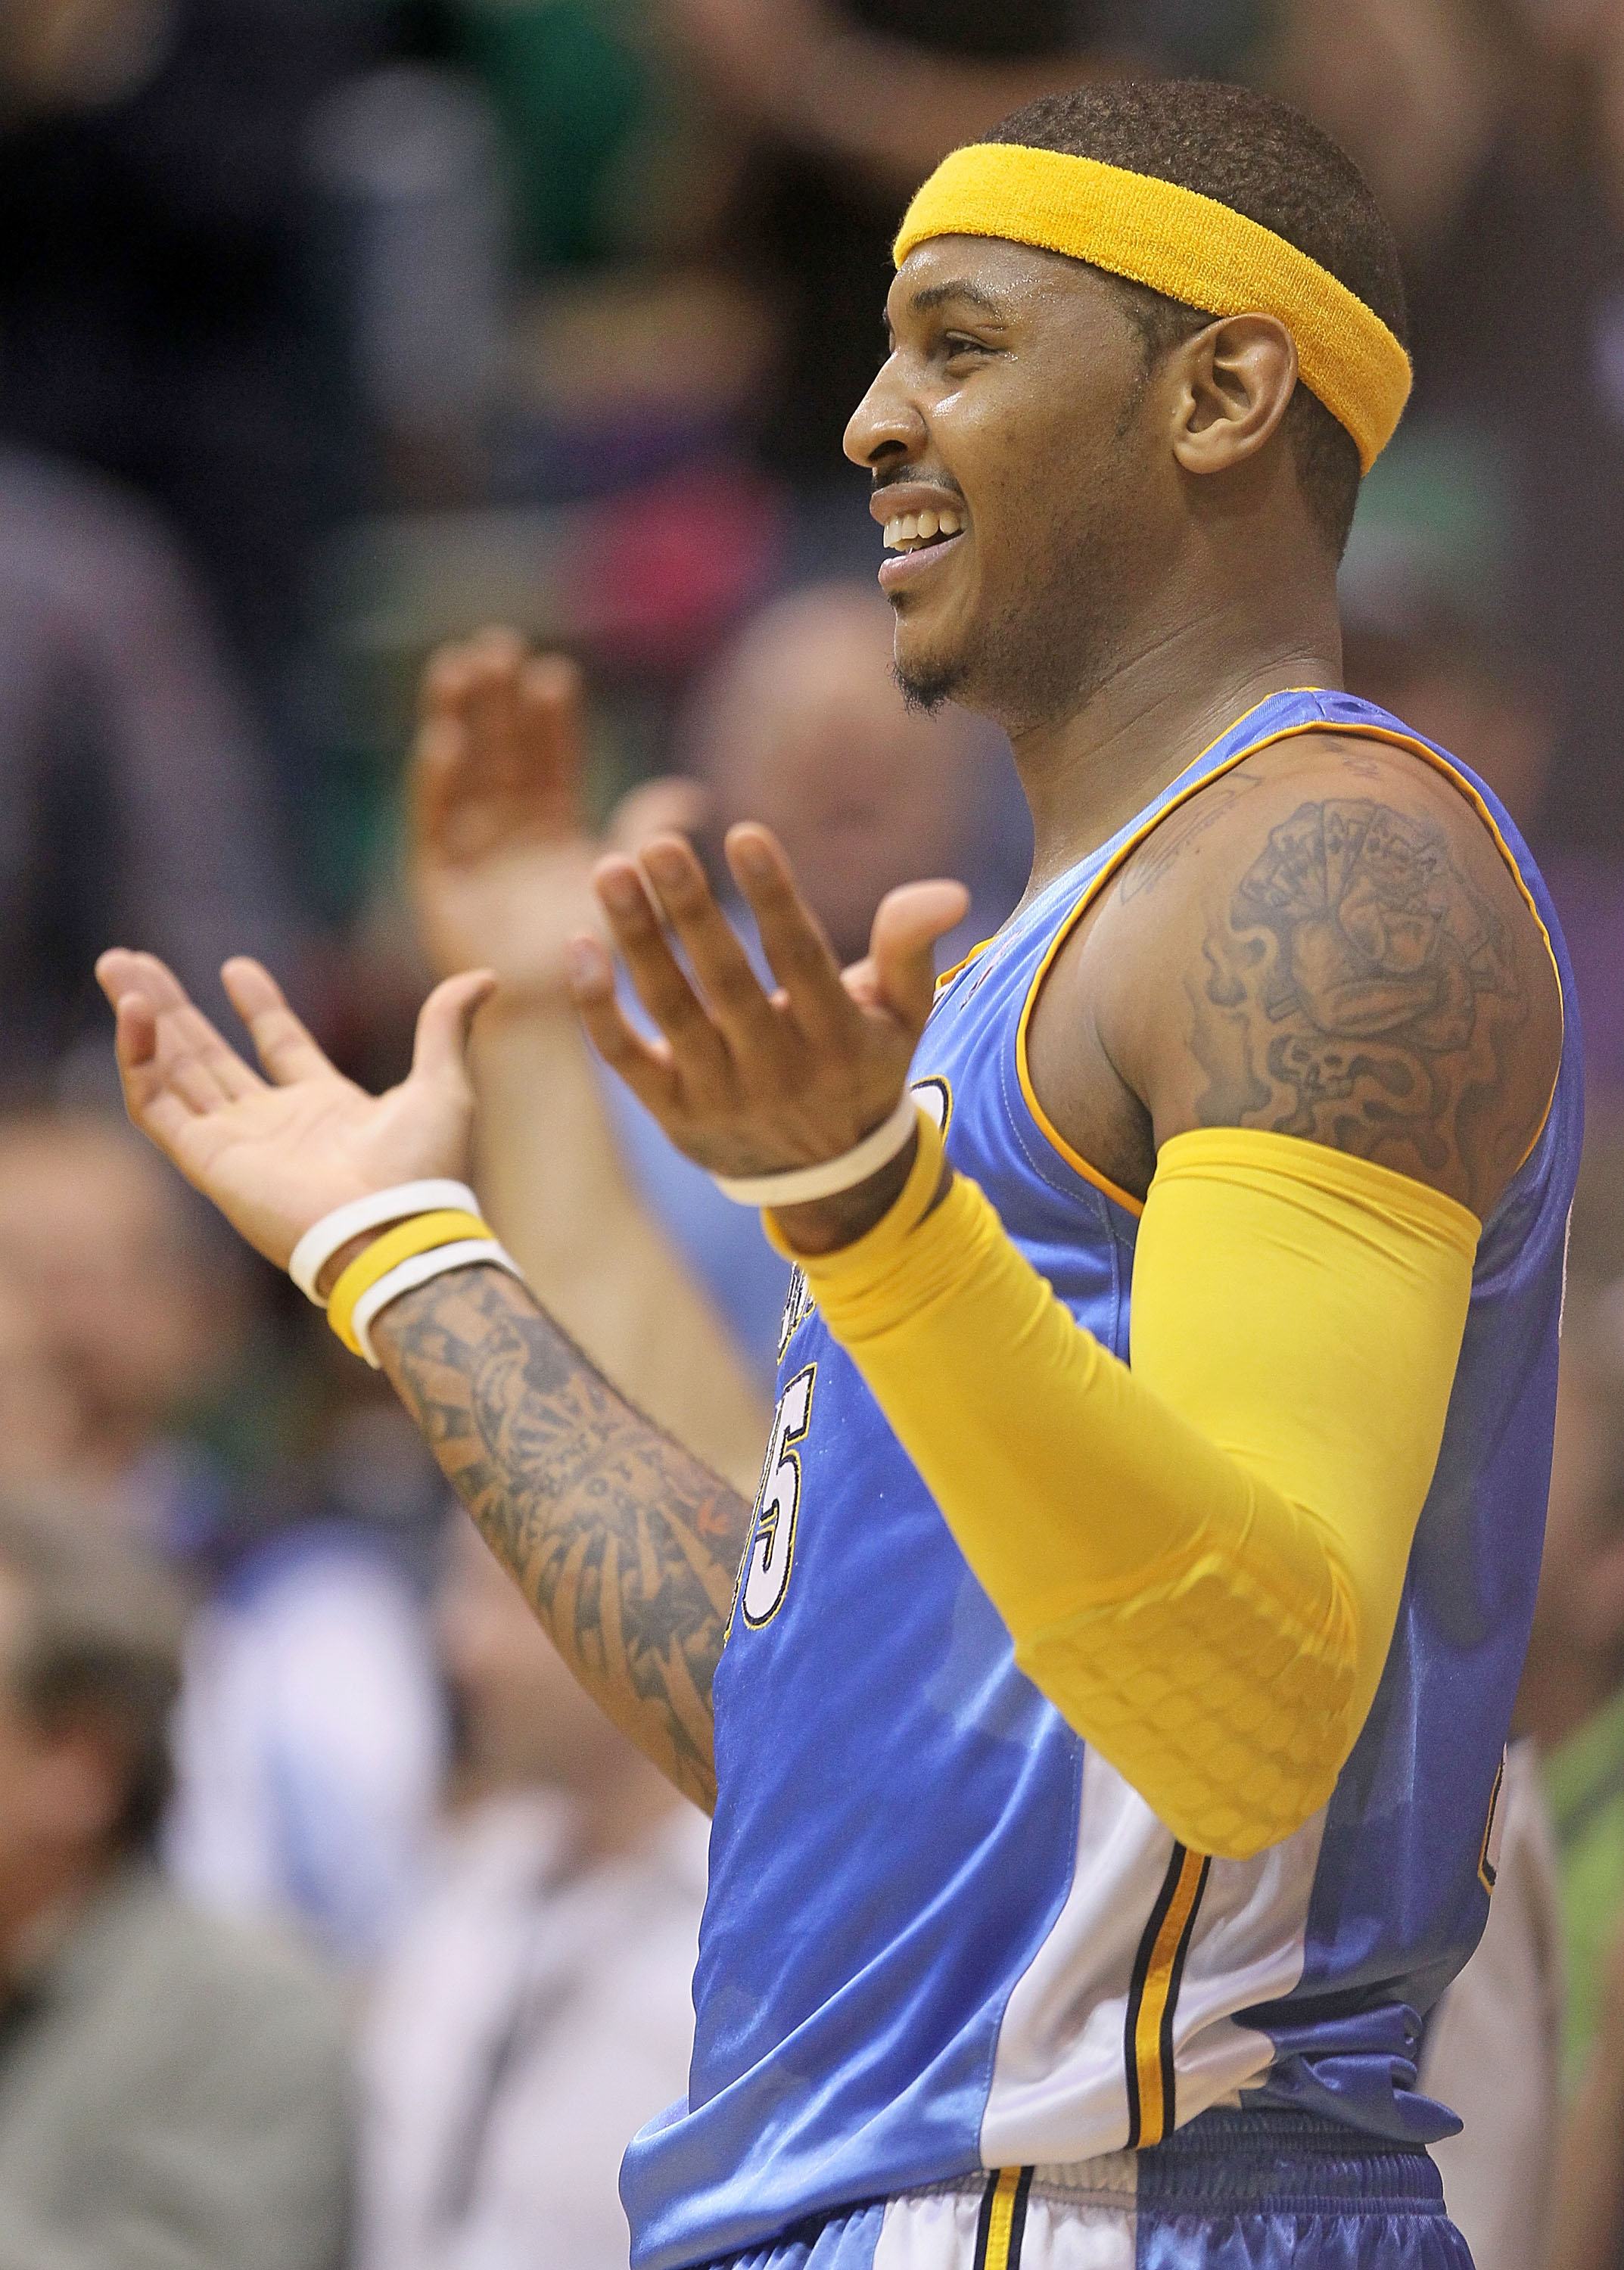 SALT LAKE CITY - APRIL 25:  Carmelo Anthony #15 of the Denver Nuggets protests after being called for his third foul against the Utah Jazz during  Game Four of the Western Conference Quarterfinals of the 2010 NBA Playoffs at EnergySolutions Arena on April